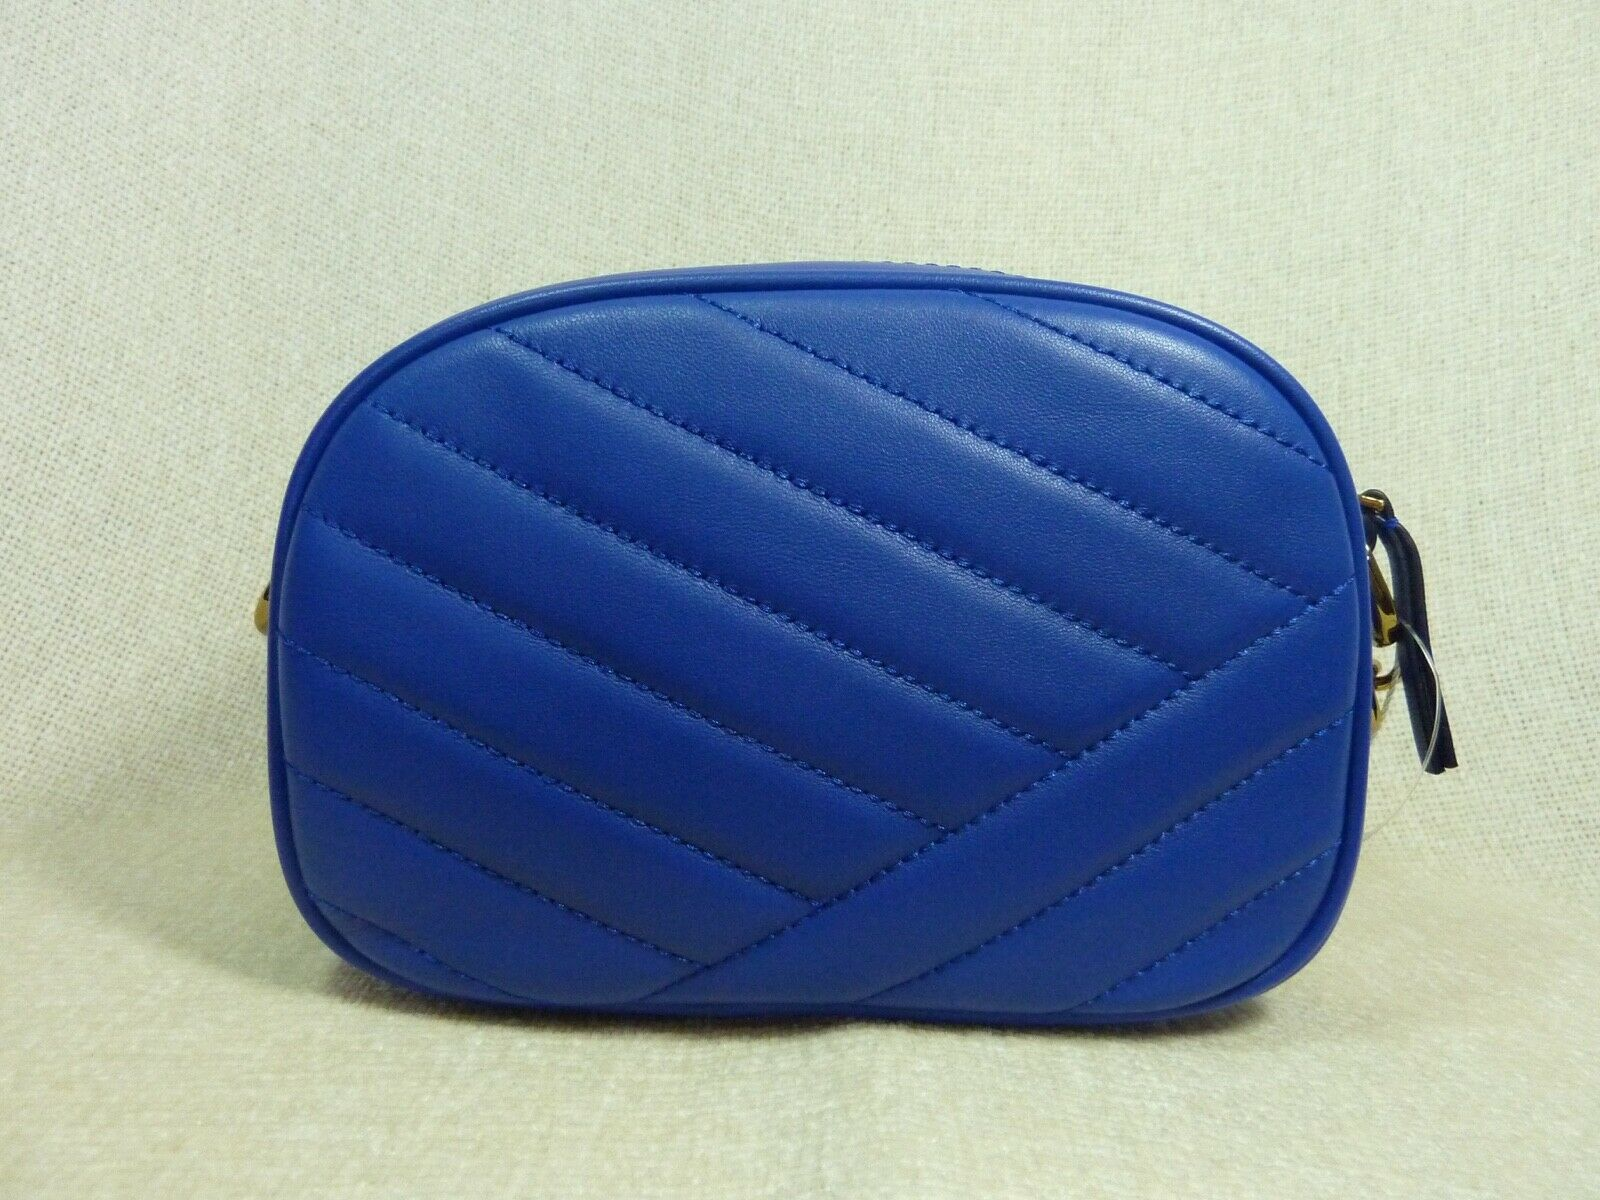 NWT Tory Burch Nautical Blue Kira Chevron Small Camera Bag $358 image 4